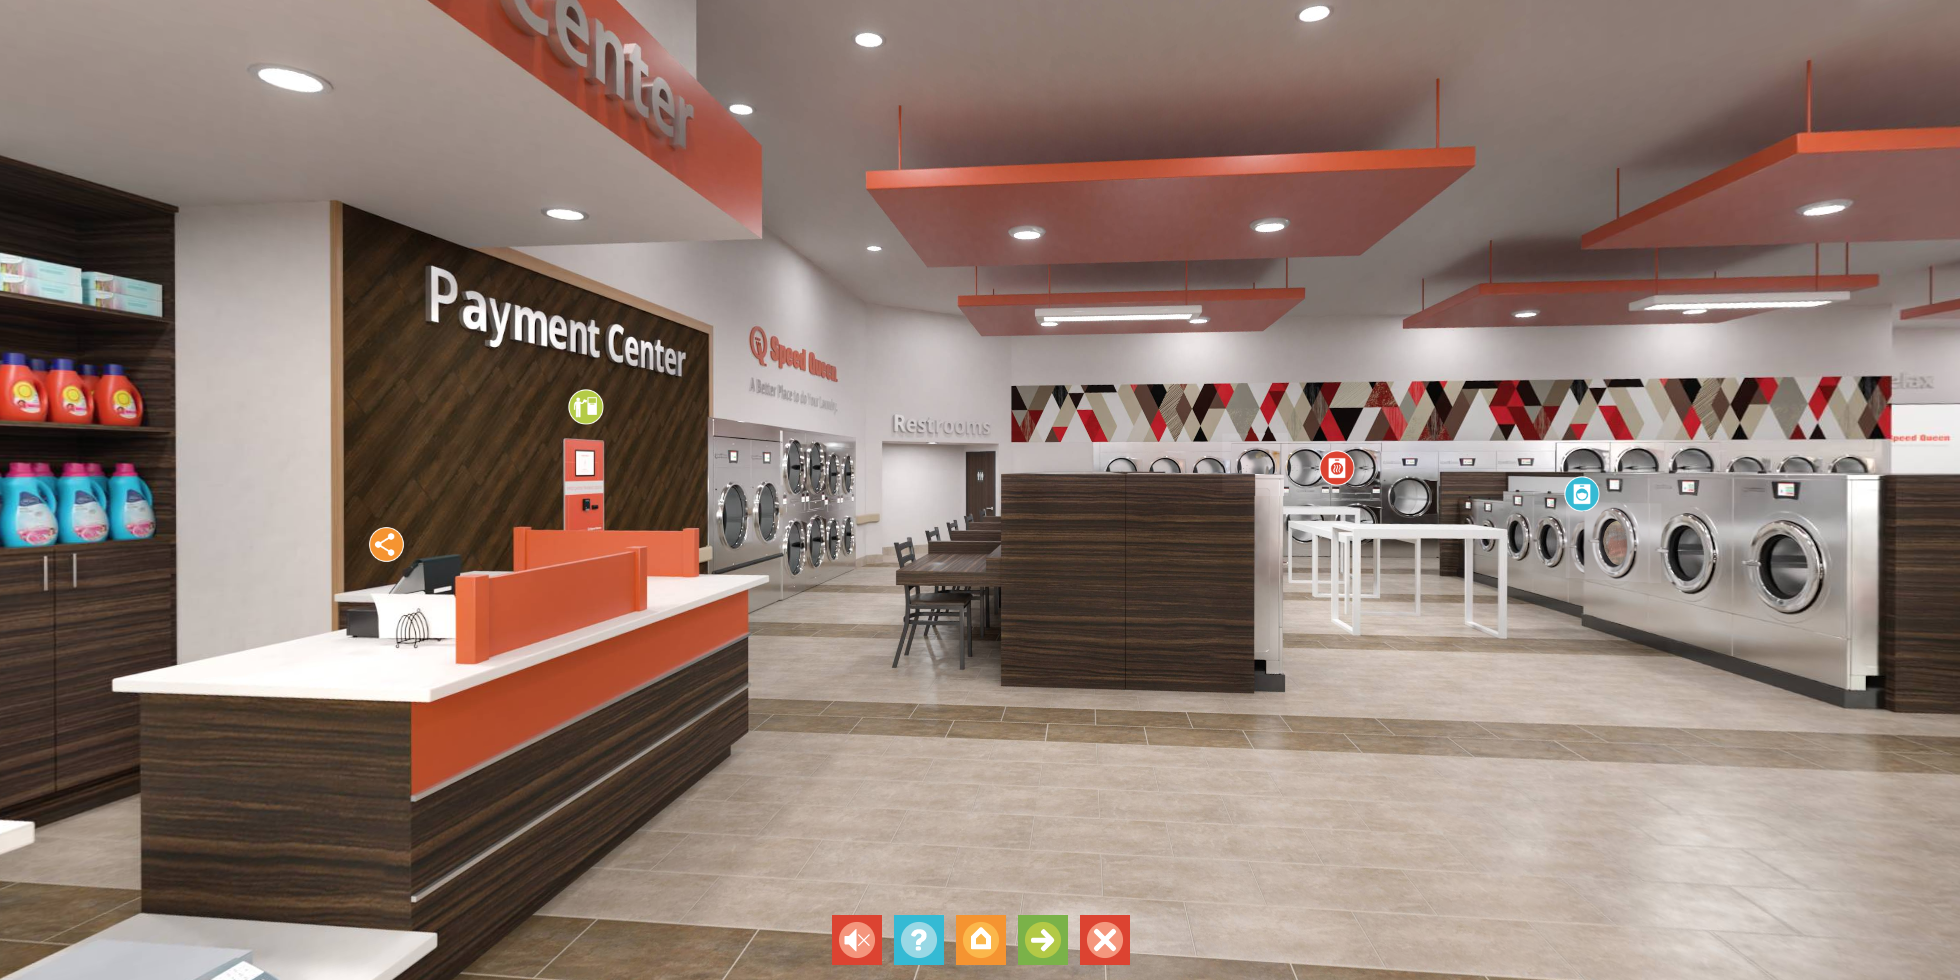 Speed Queen Tool Offers Virtual Tour of Laundromat